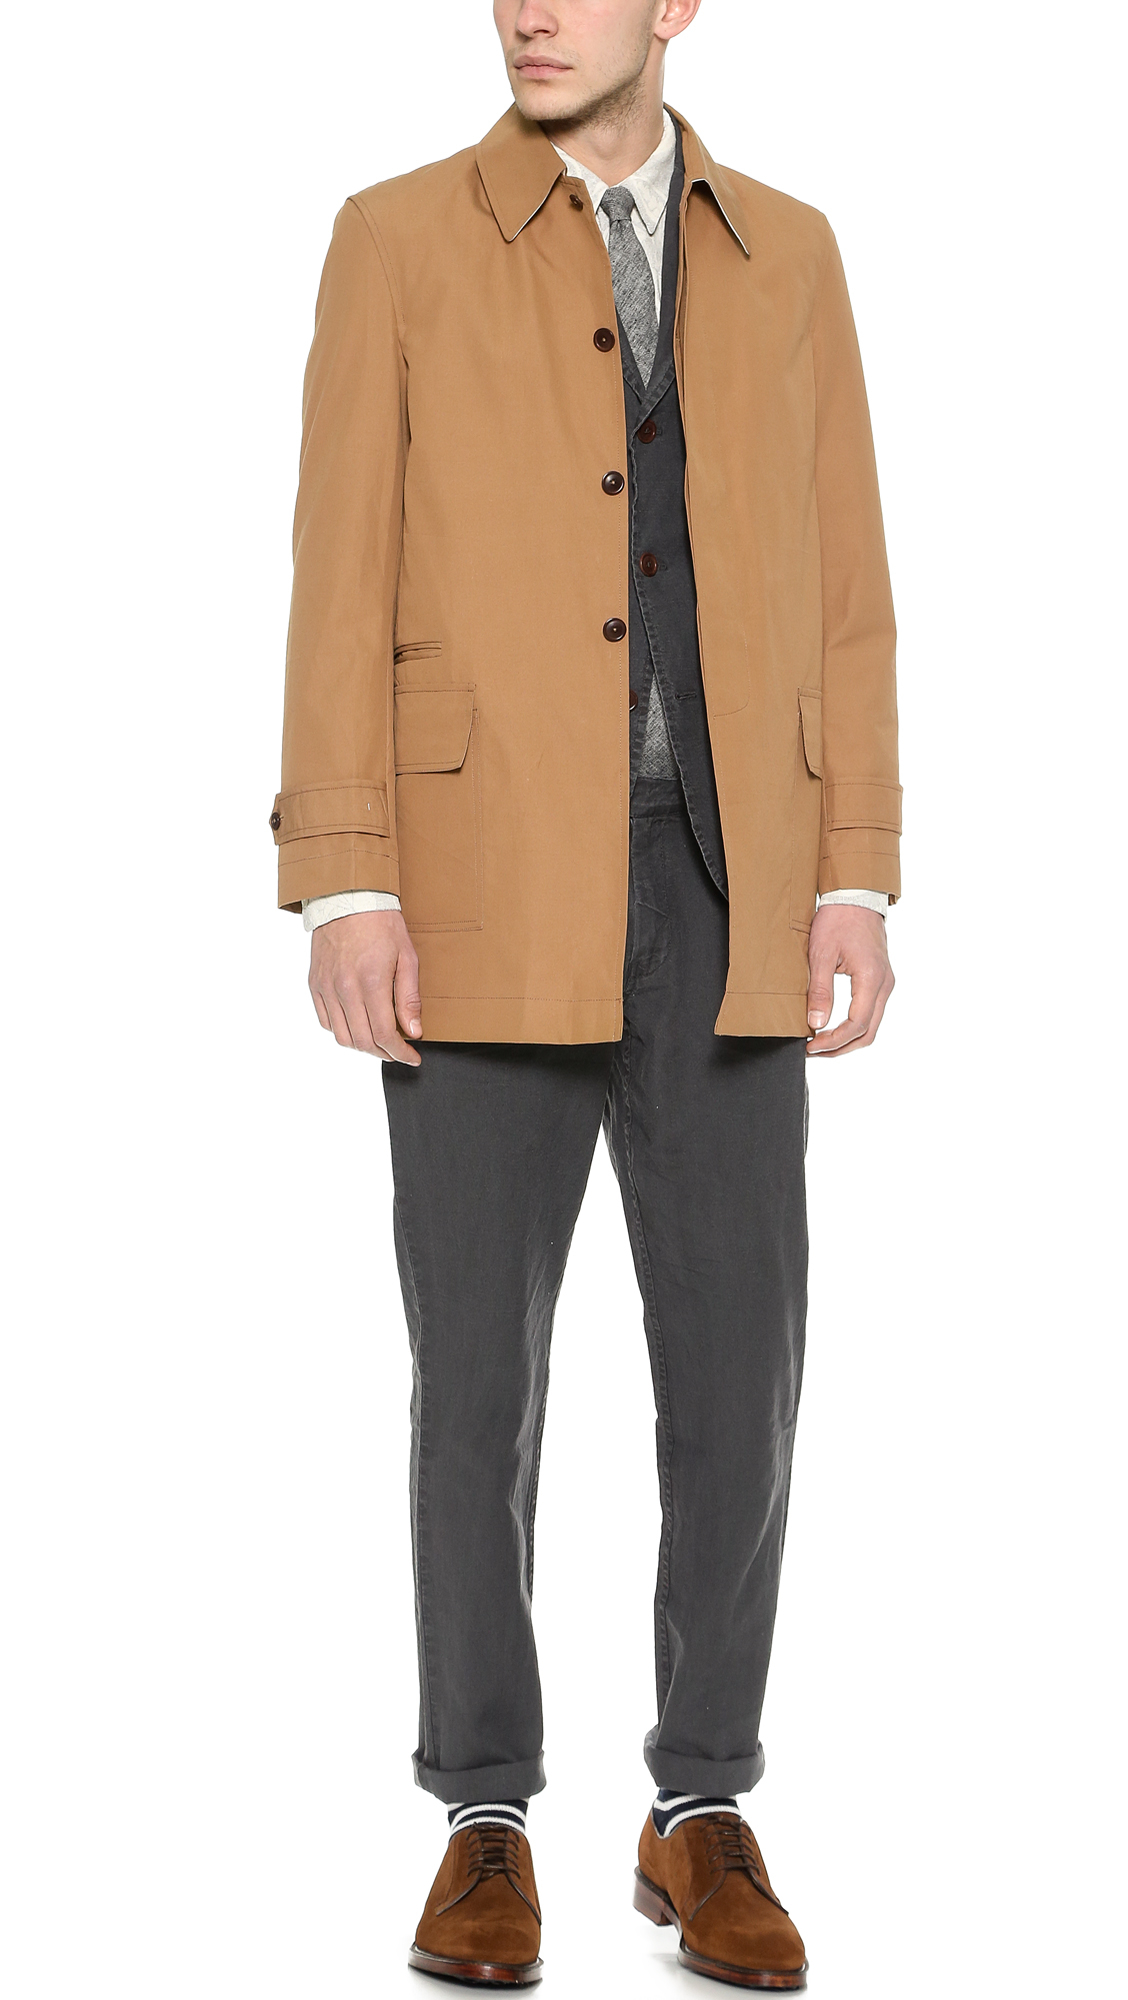 Brooklyn tailors Weatherproof English Cotton Raincoat in Brown for ...